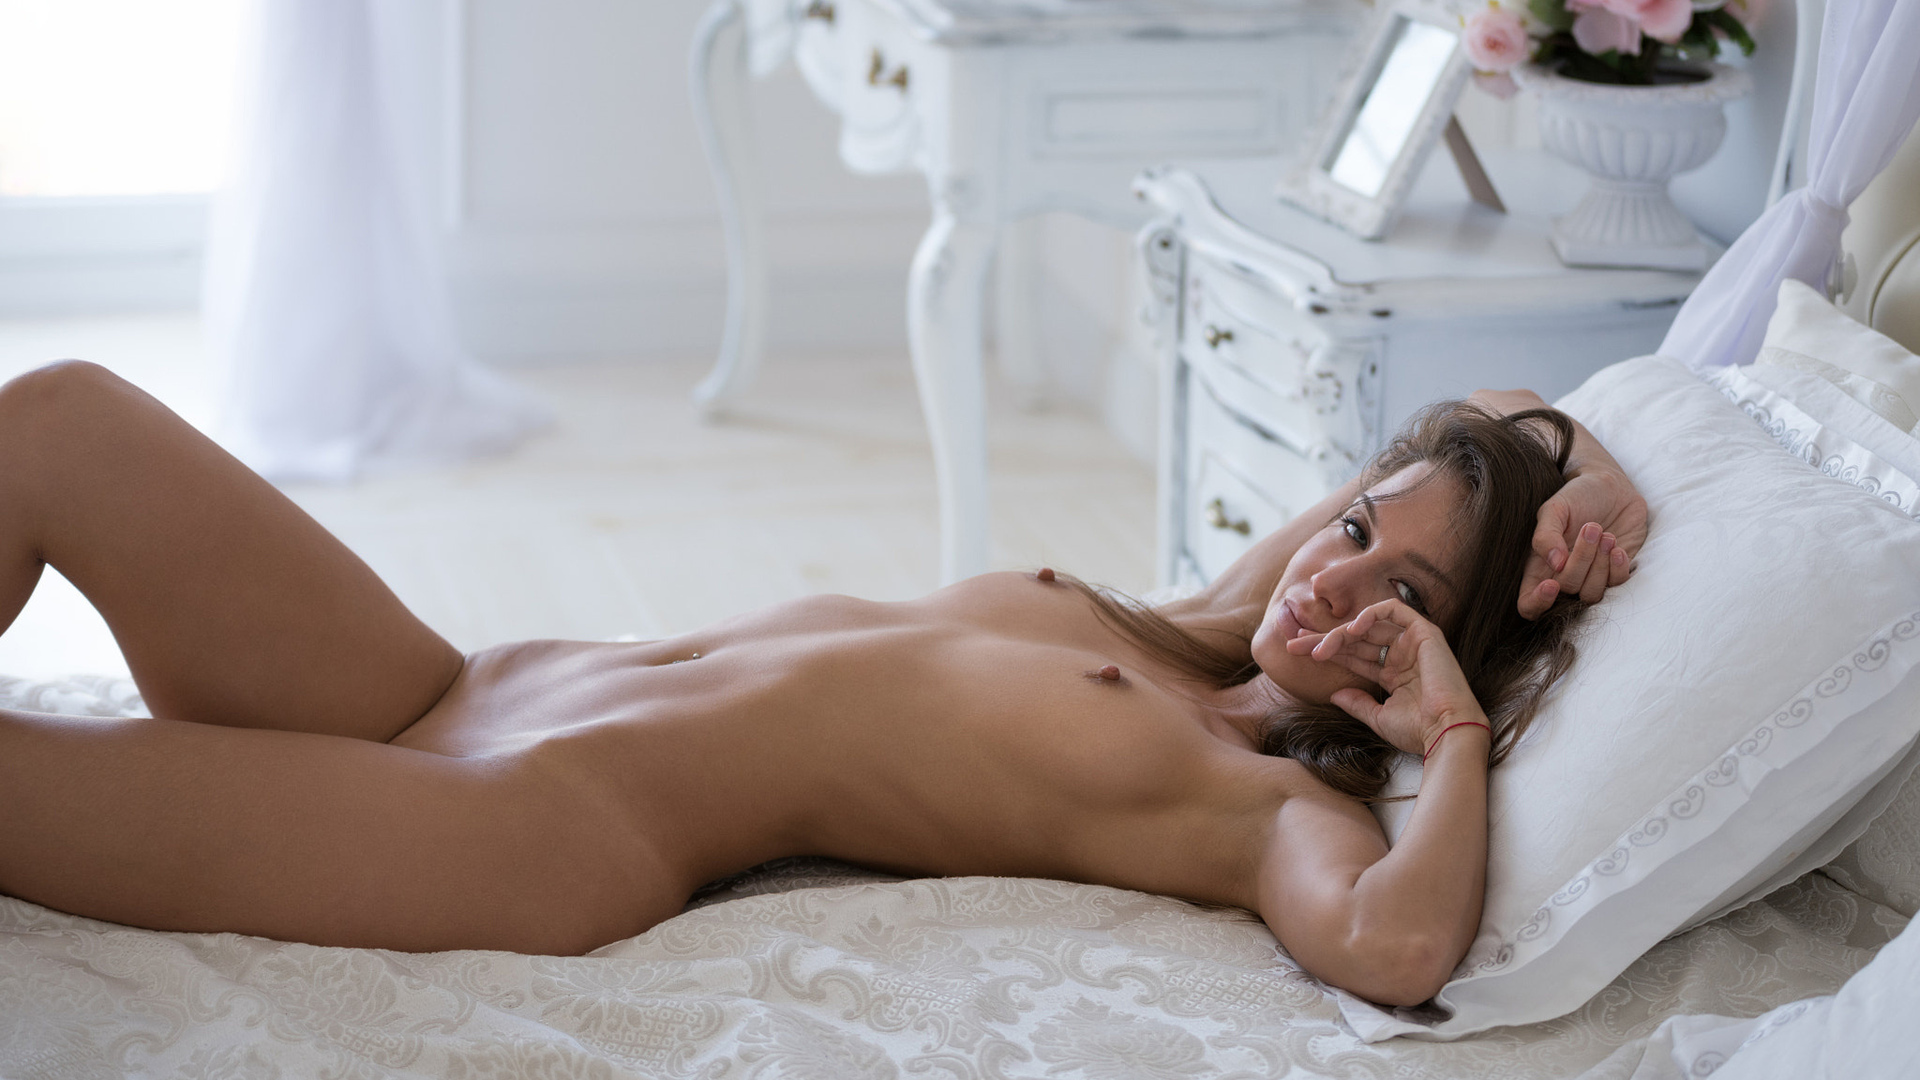 Hot Sexy Naked Blonde Girls On The Bed